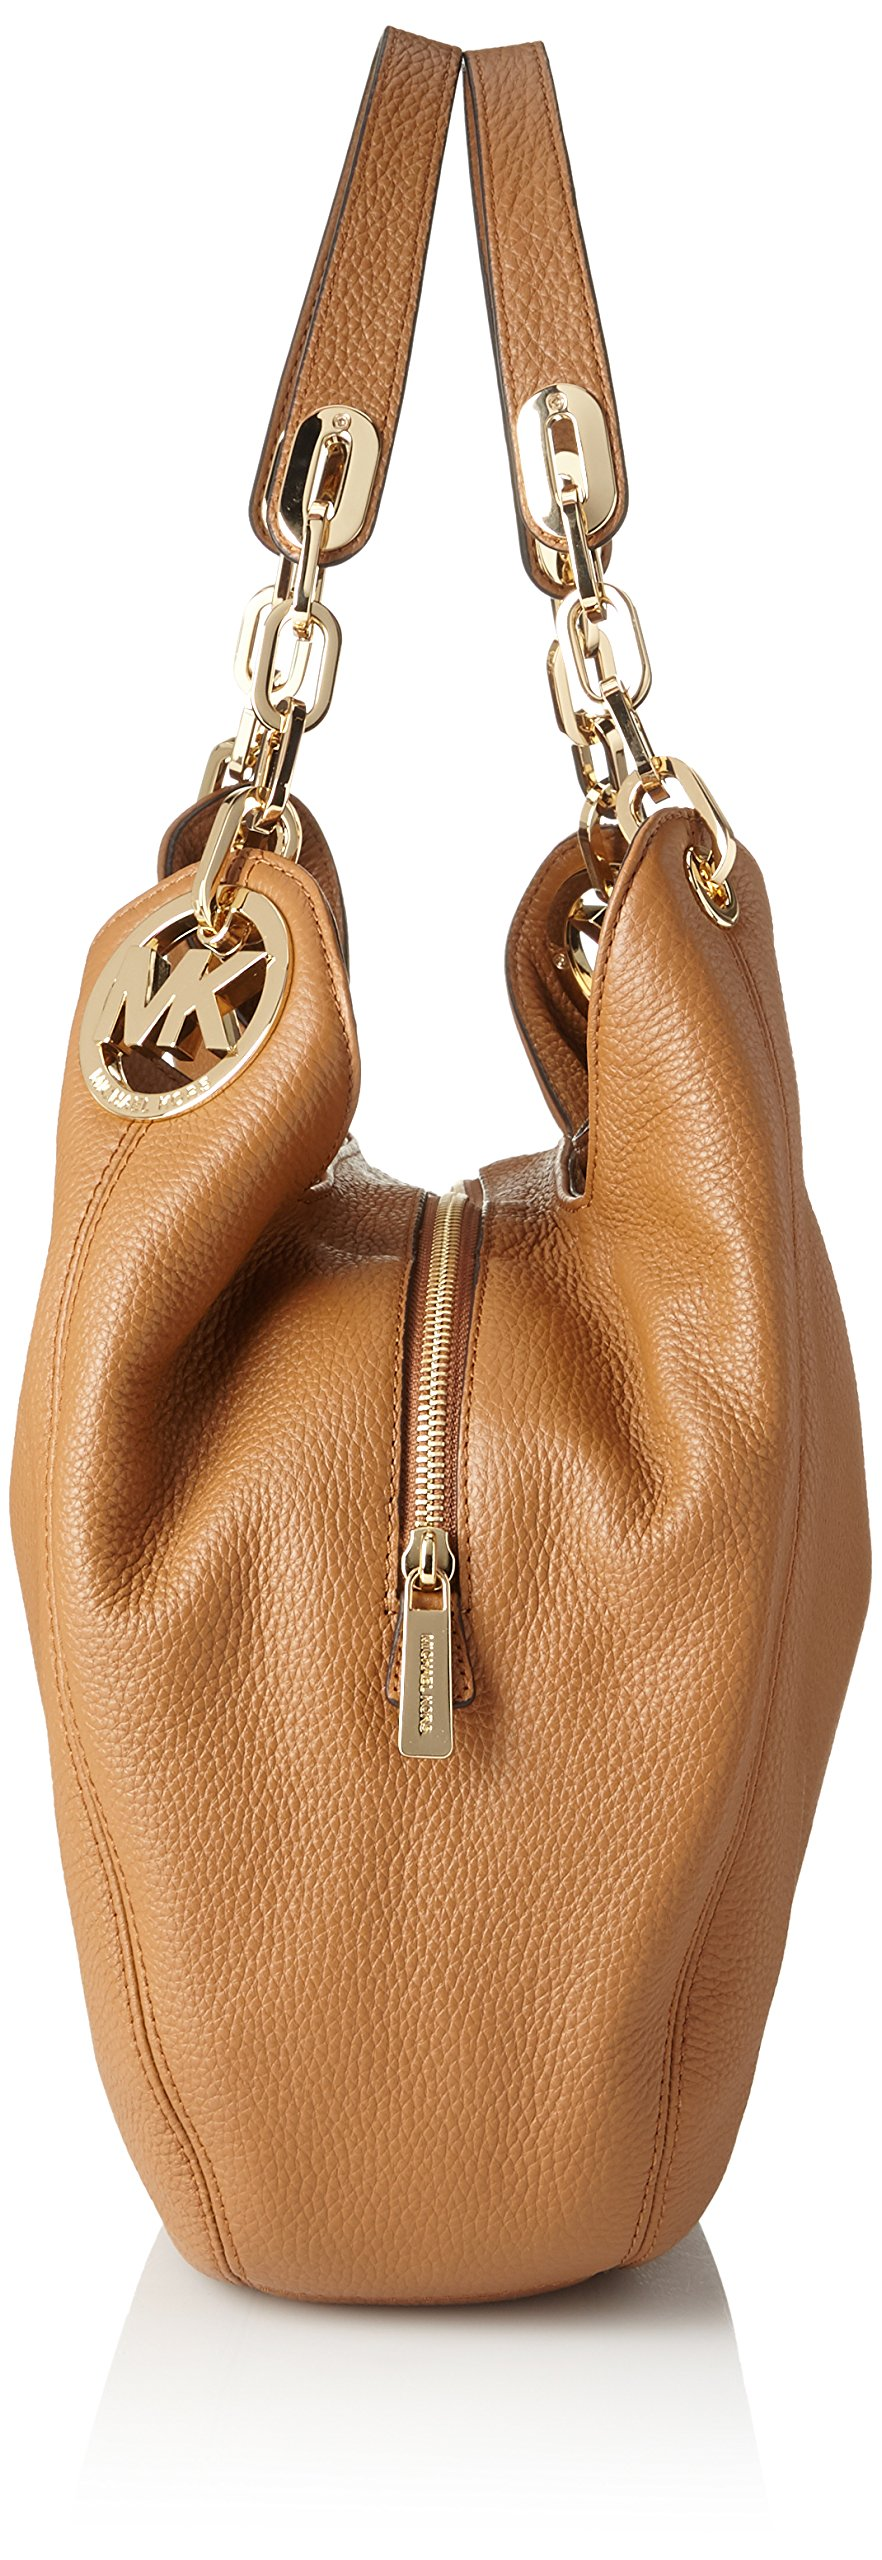 Michael-Kors-Womens-Fulton-Tote-Bag